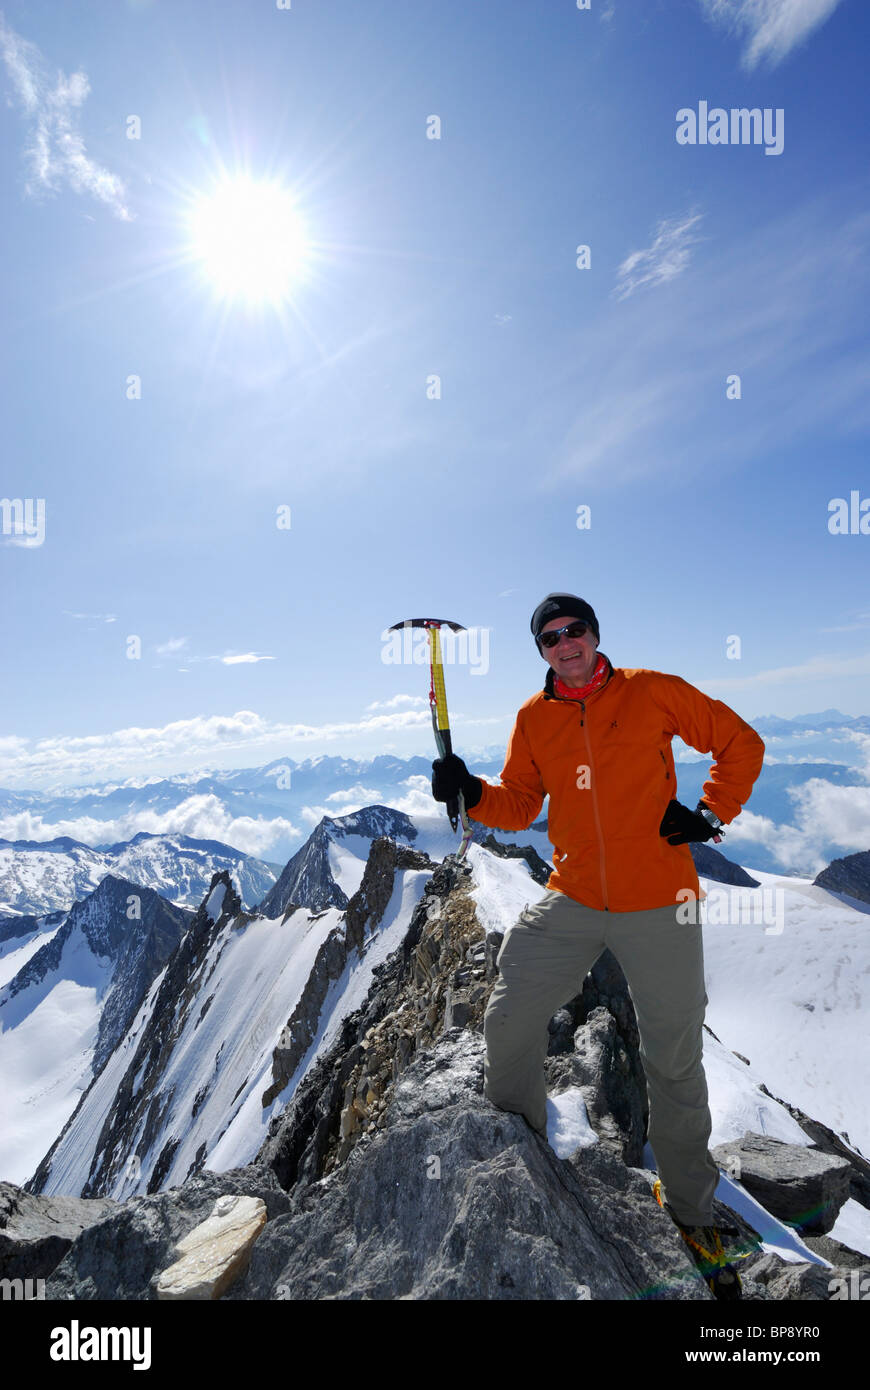 Mountaineer at Hochfeiler summit, Zillertal Alps, South Tyrol, Alto Adige, Italy Stock Photo